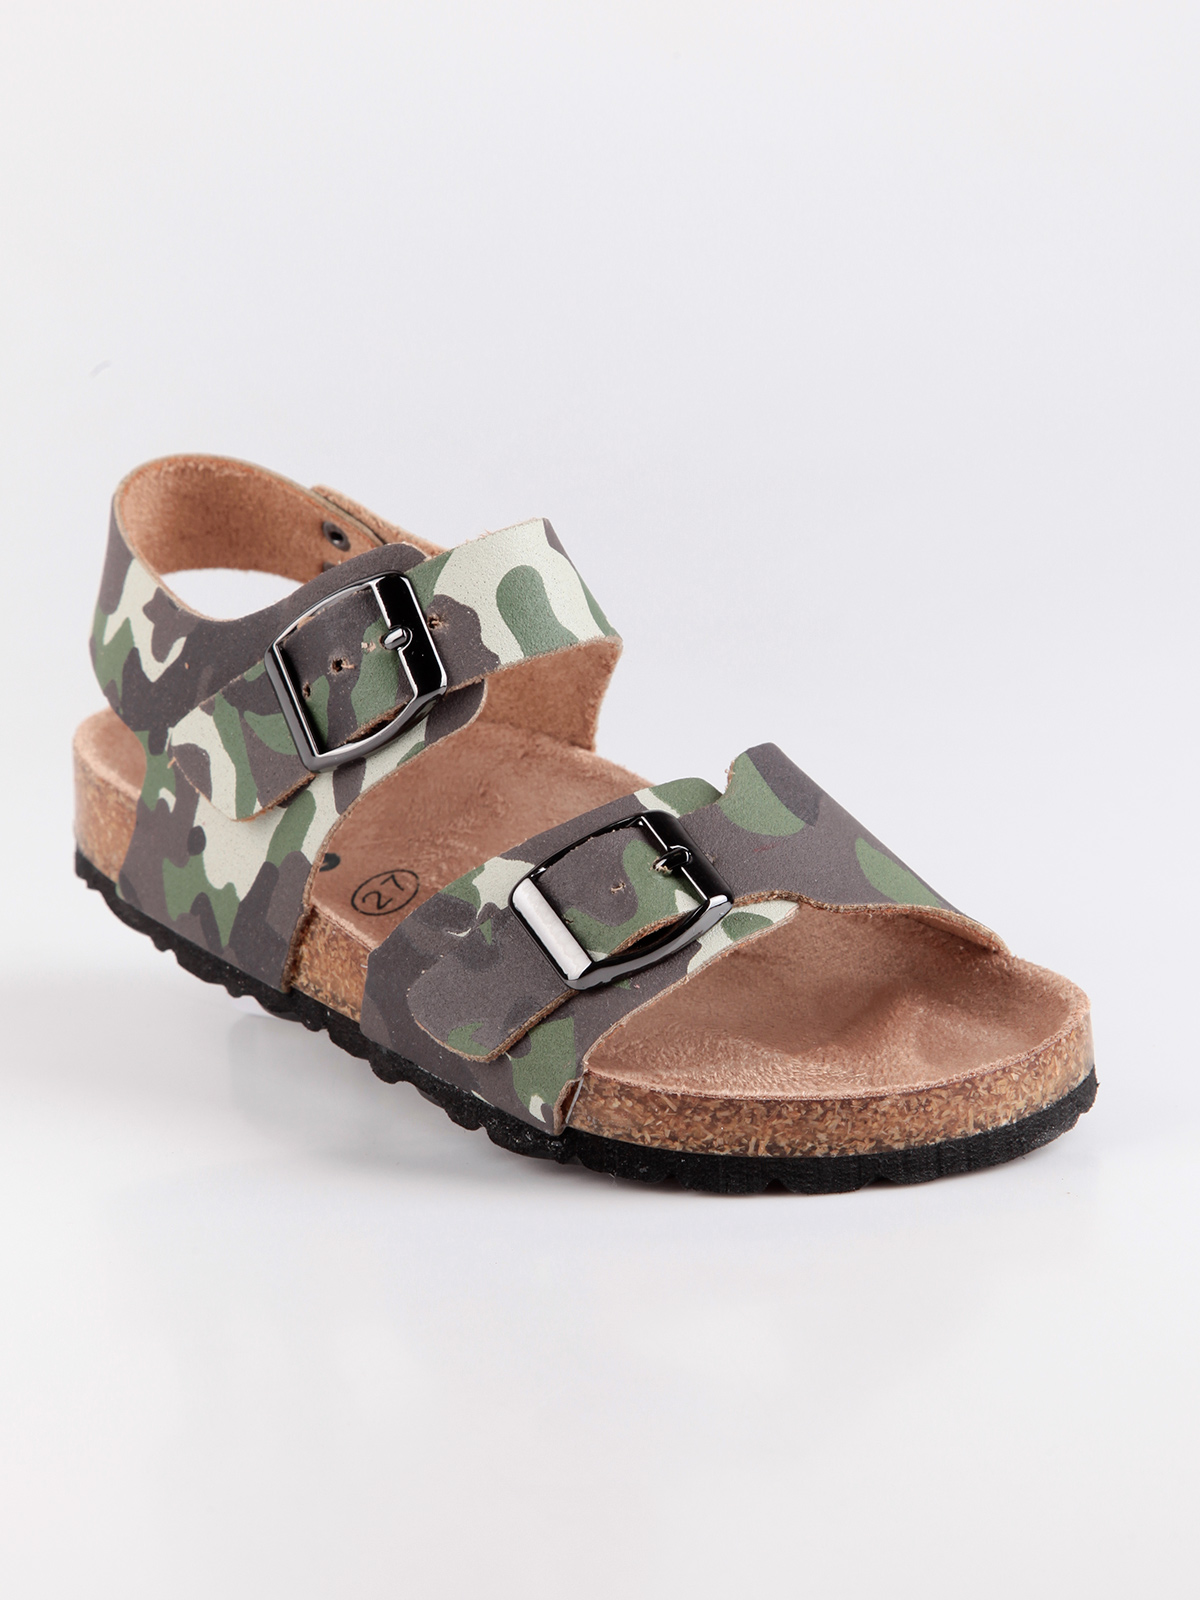 ACE Sandals Camouflage With Straps